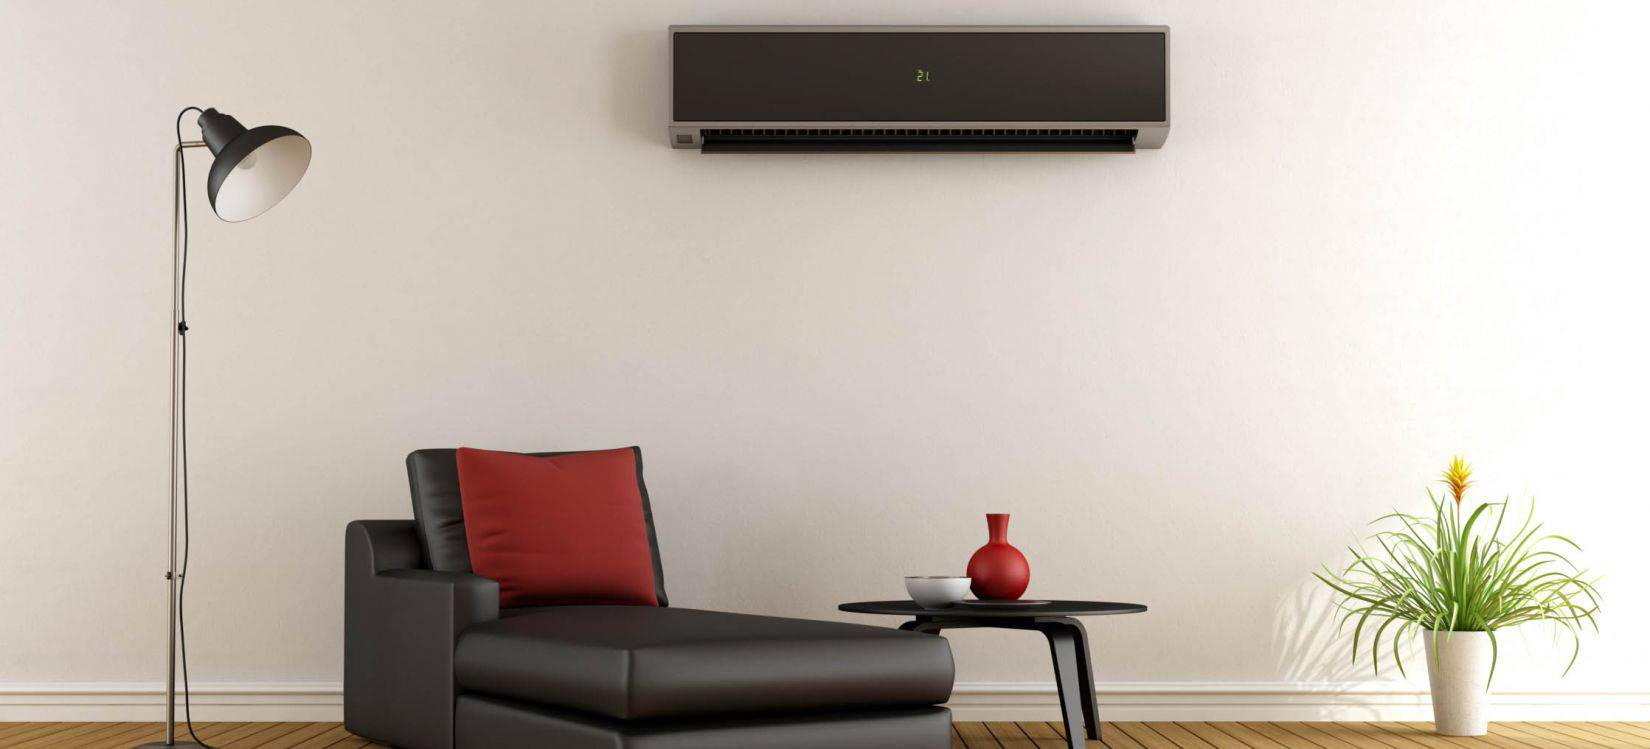 Top Central Air Brands For Your Home Qualitysmith